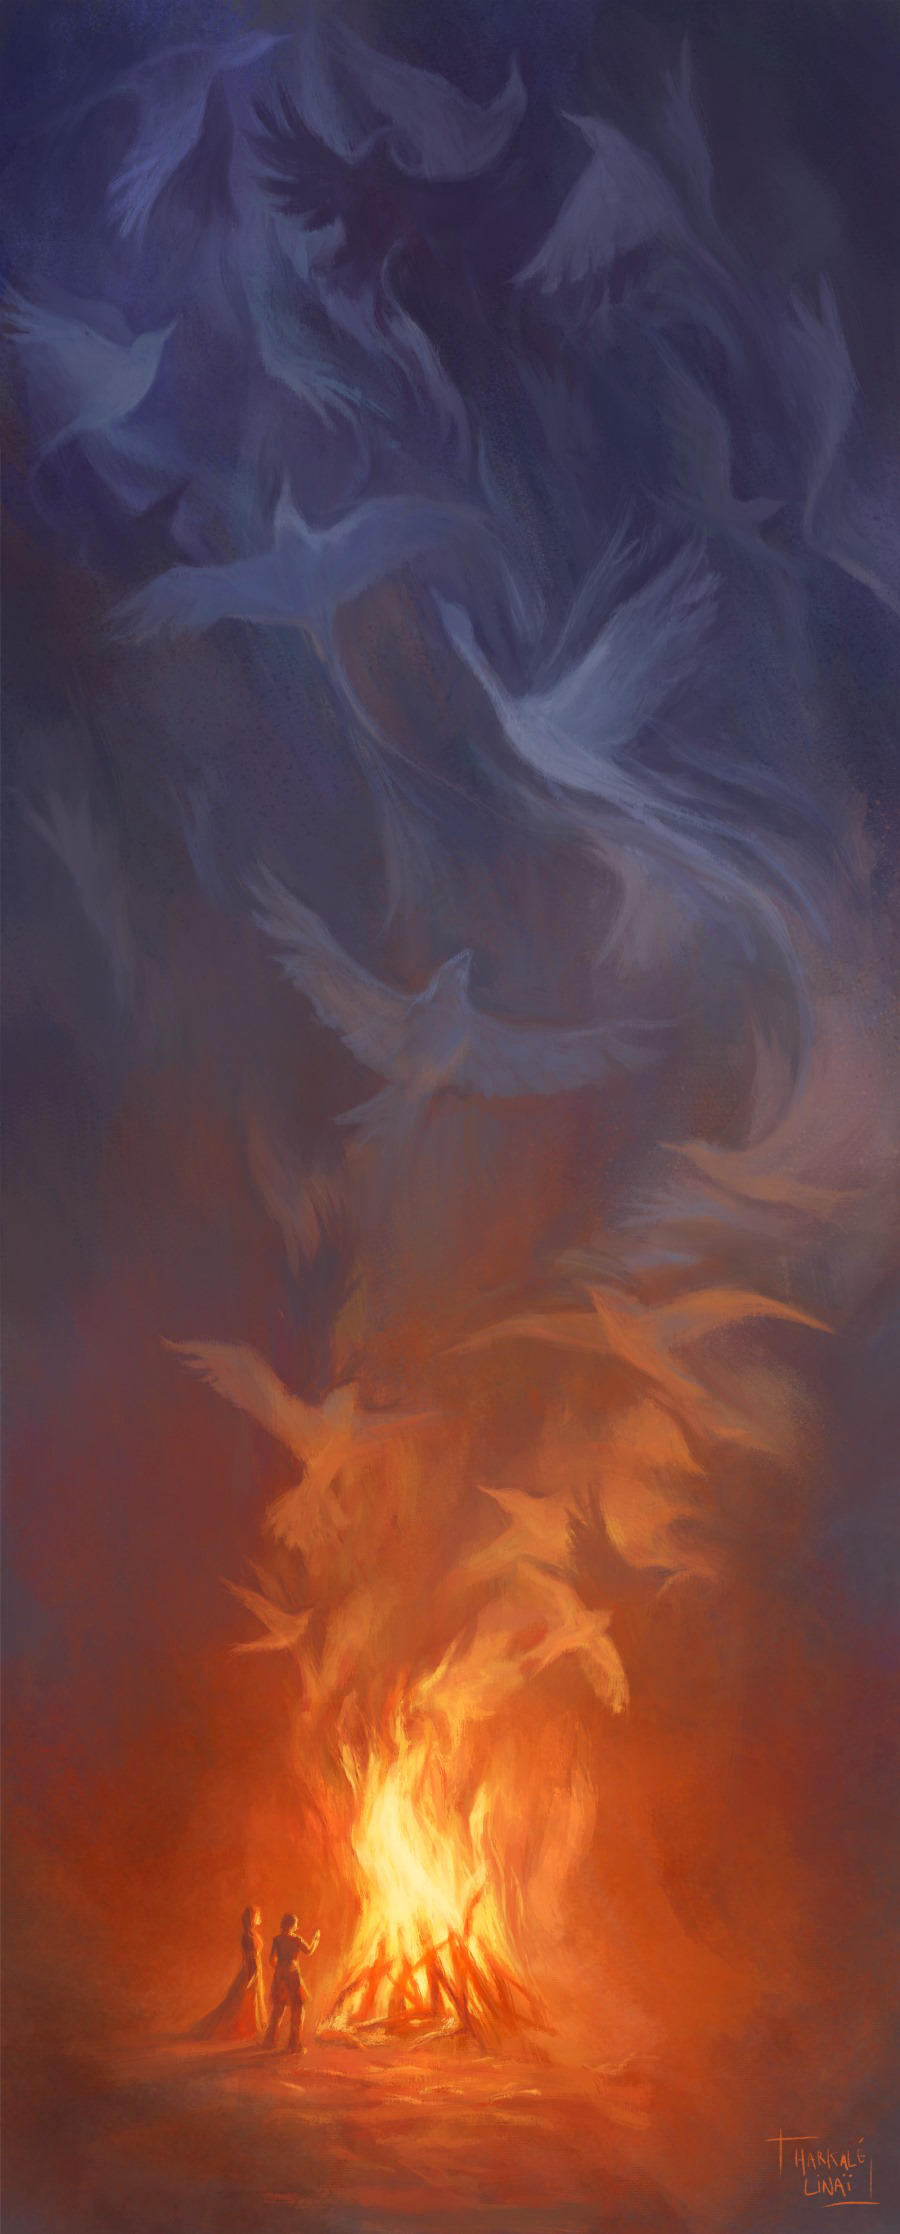 Elusive Children of Fire and Air by Harkale-Linai